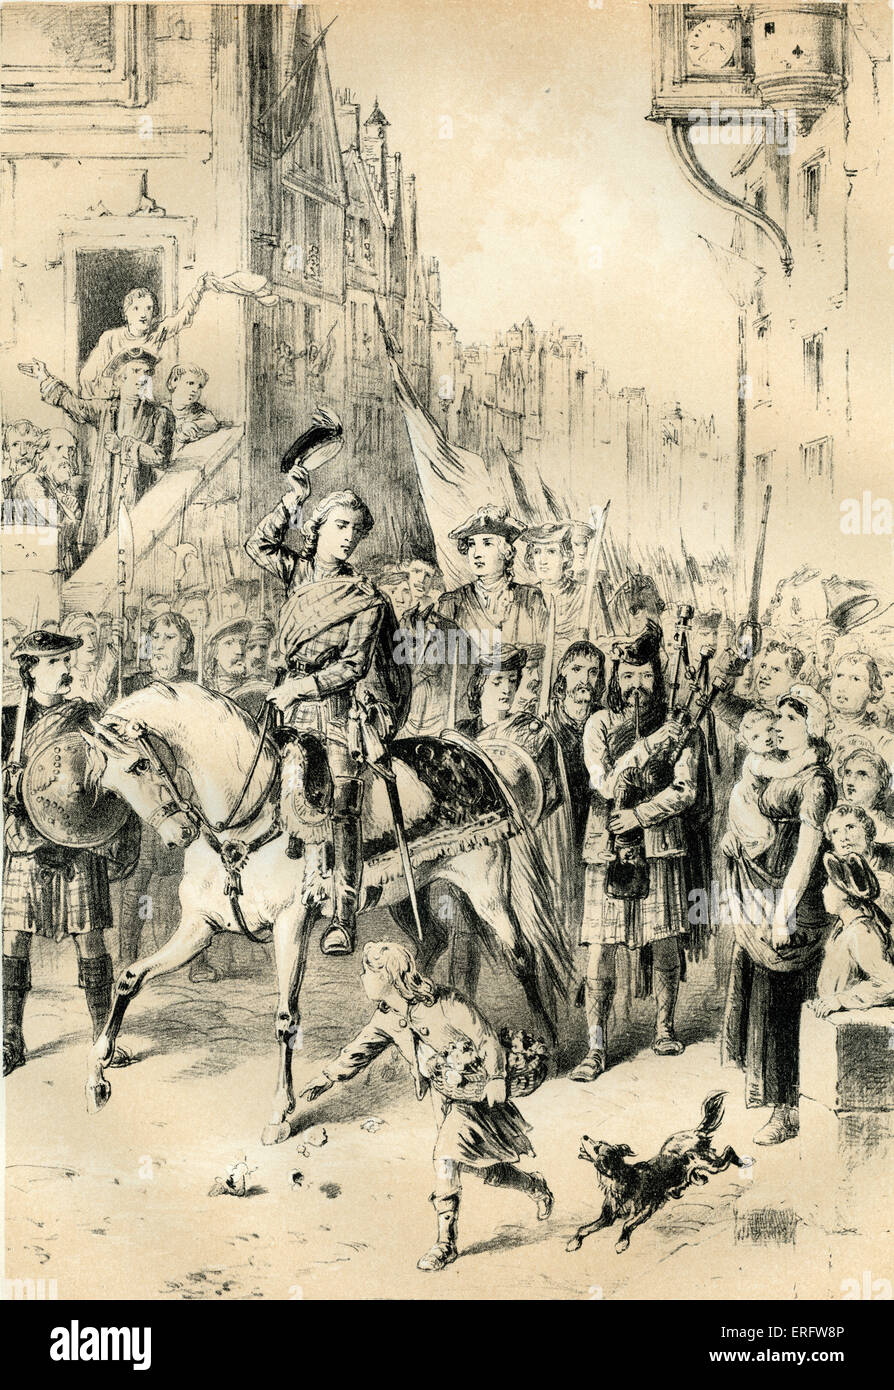 Prince Charles Edward entering Edinburgh after the battle of Prestonpans (1745), the first significant conflict Stock Photo